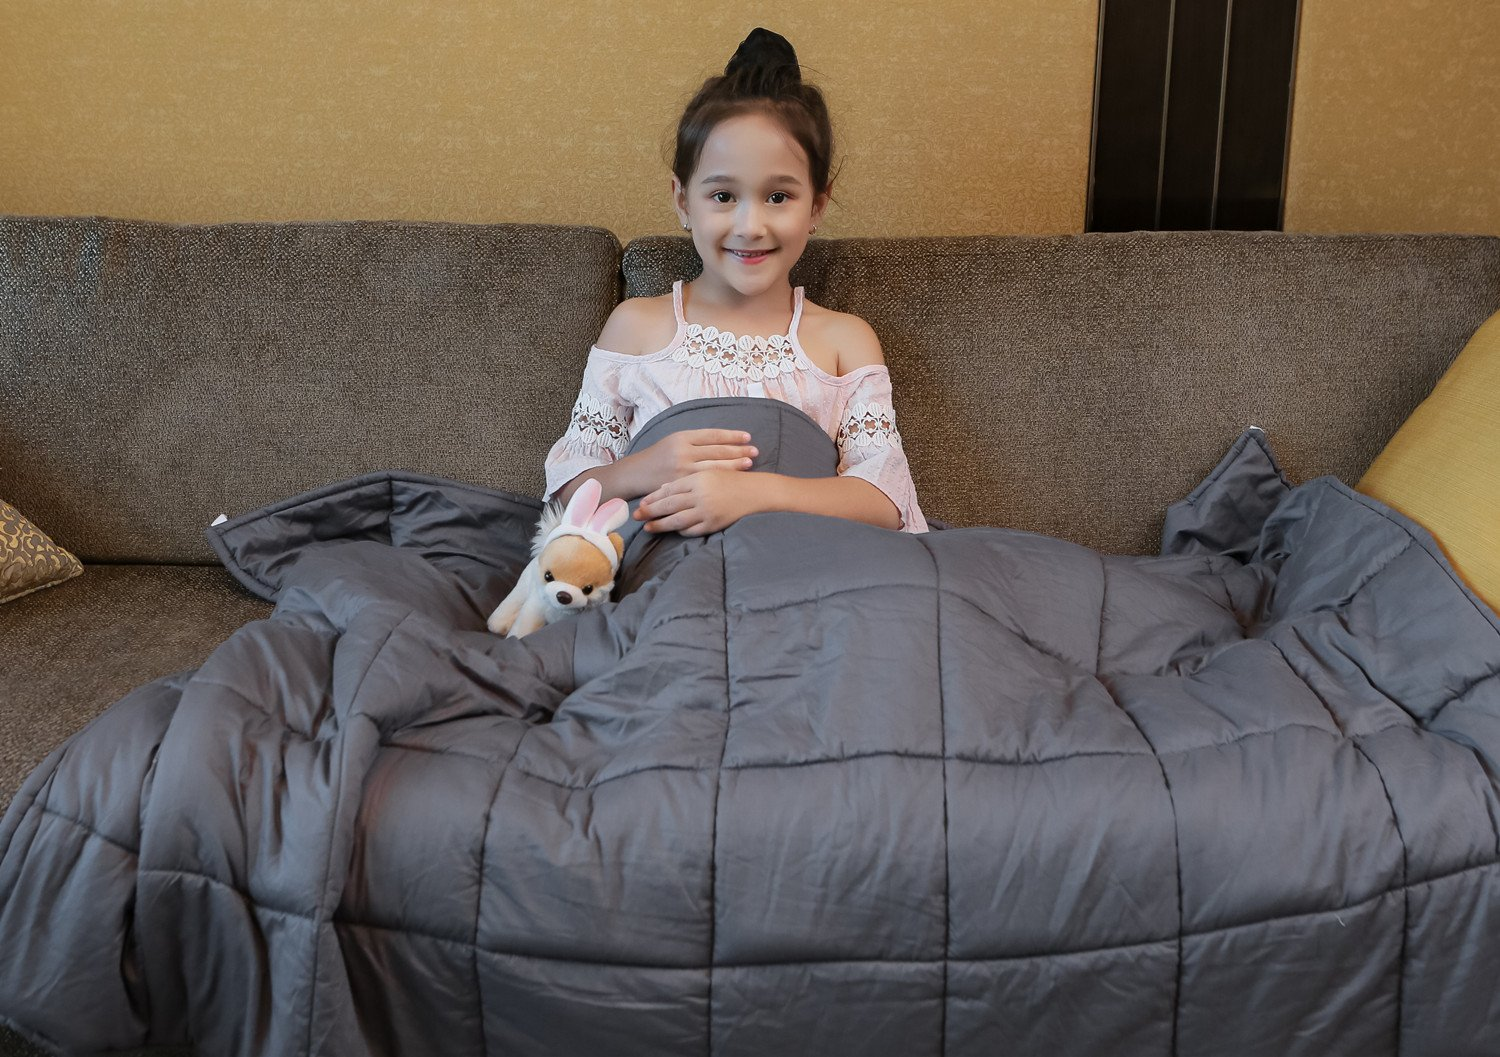 YnM Weighted Blanket Black Friday Deal 2020